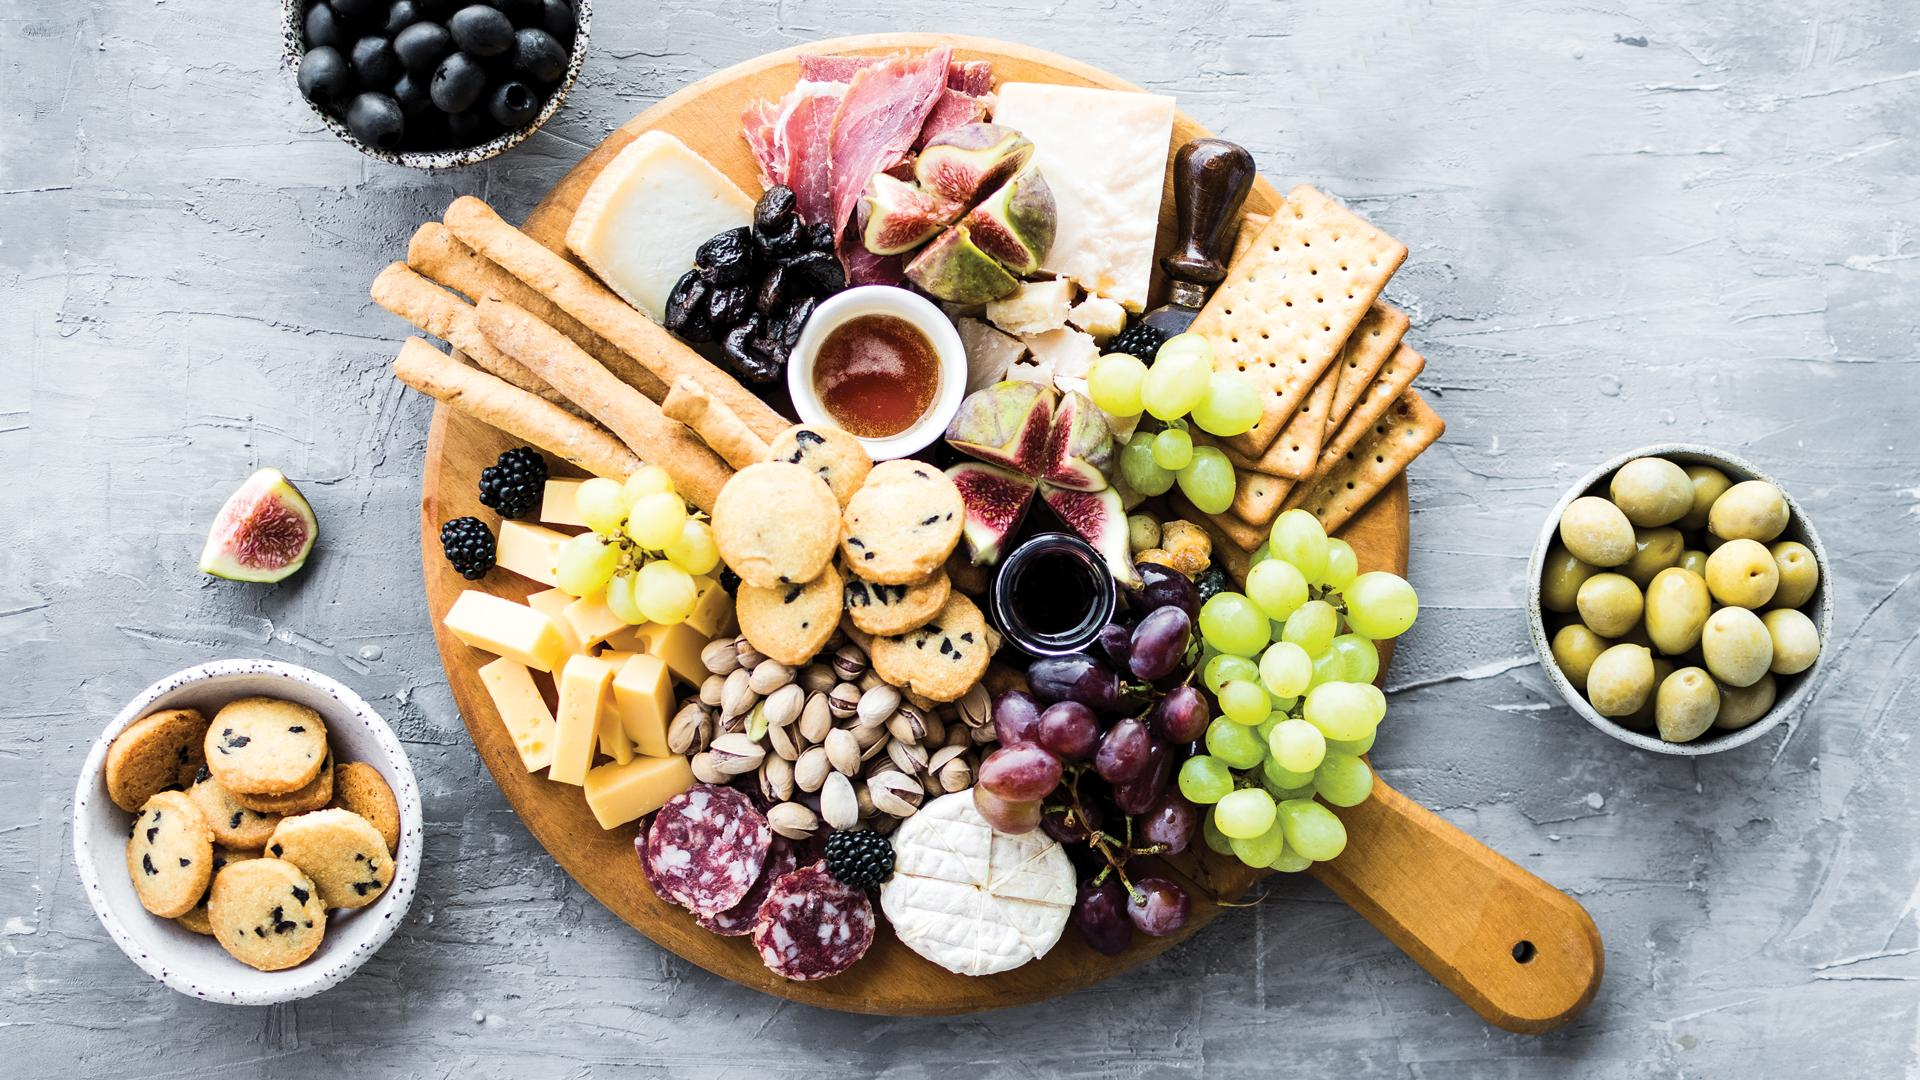 How to make the perfect holiday charcuterie board   Flat lay of charcuterie board with meat, cheese and garnishes